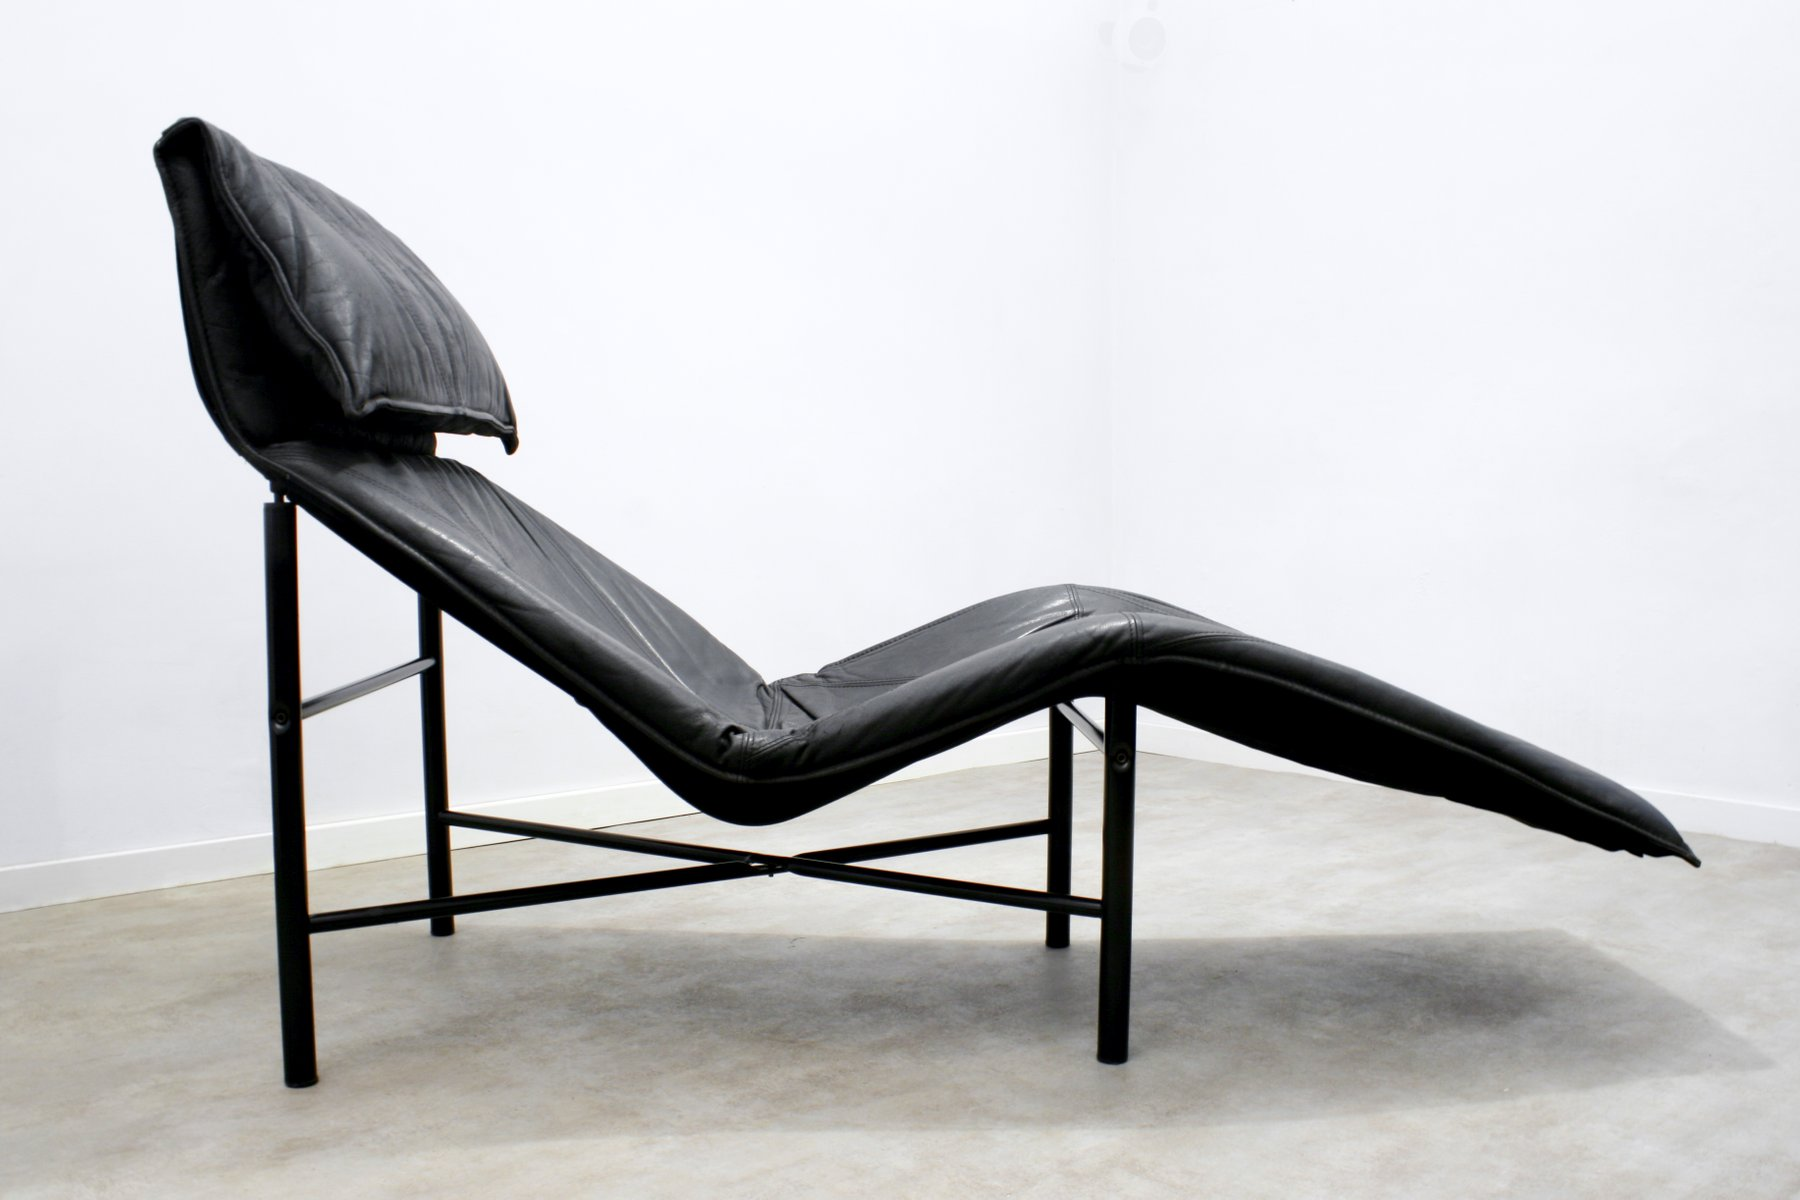 Black leather skye chaise longue by tord bjrklund for ikea for Chaise 65 cm ikea